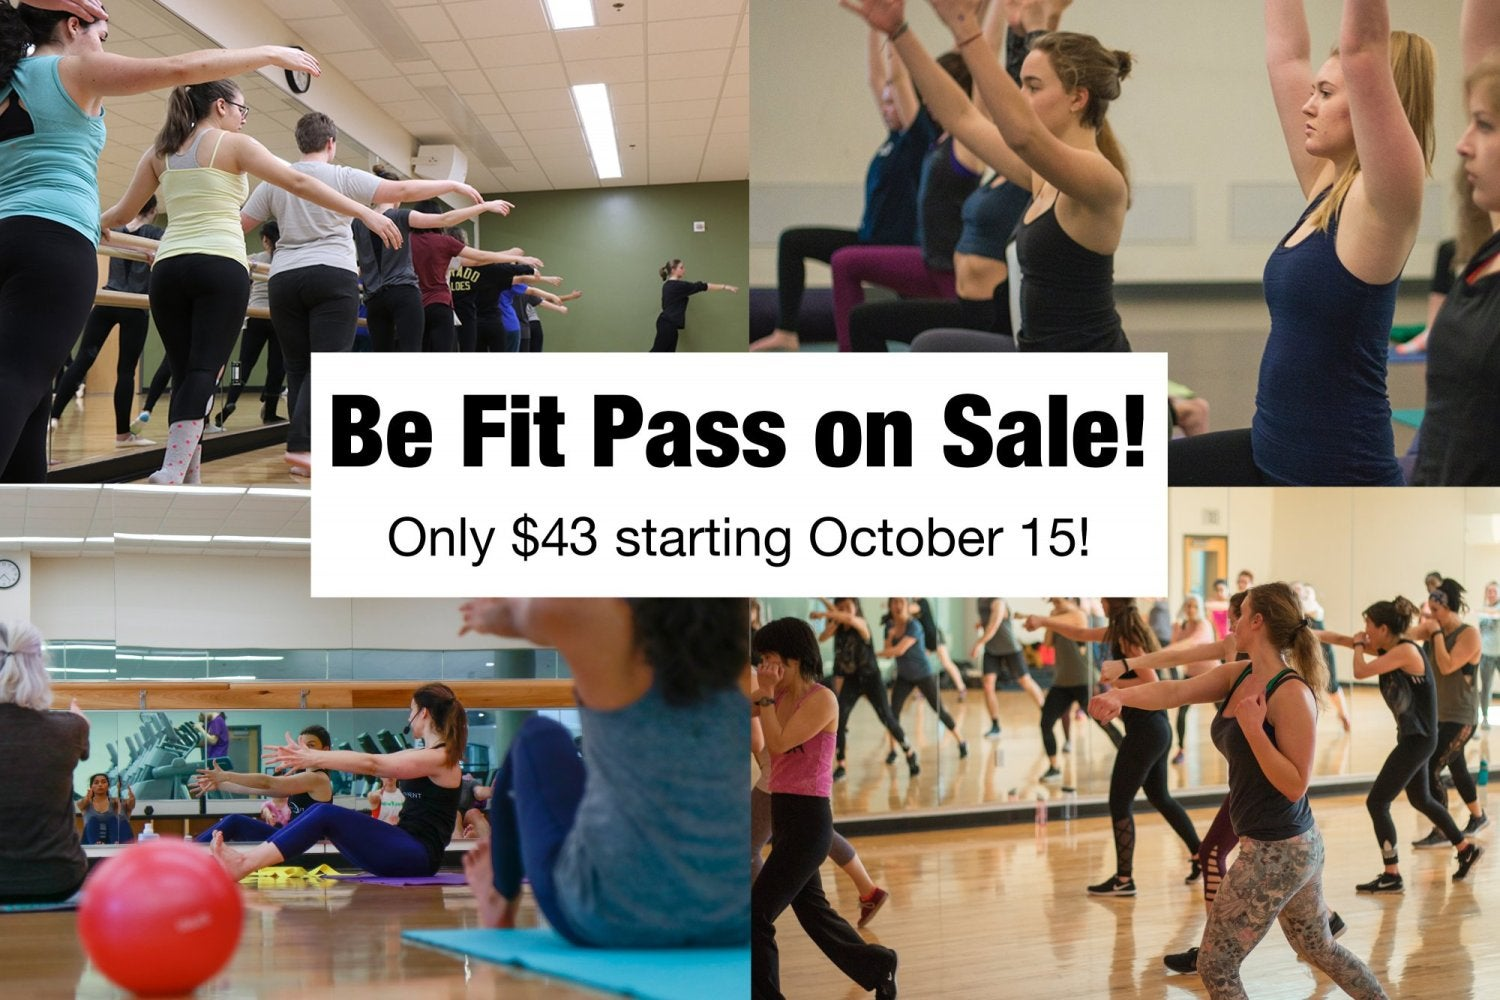 Be Fit Pass on sale now for $43!